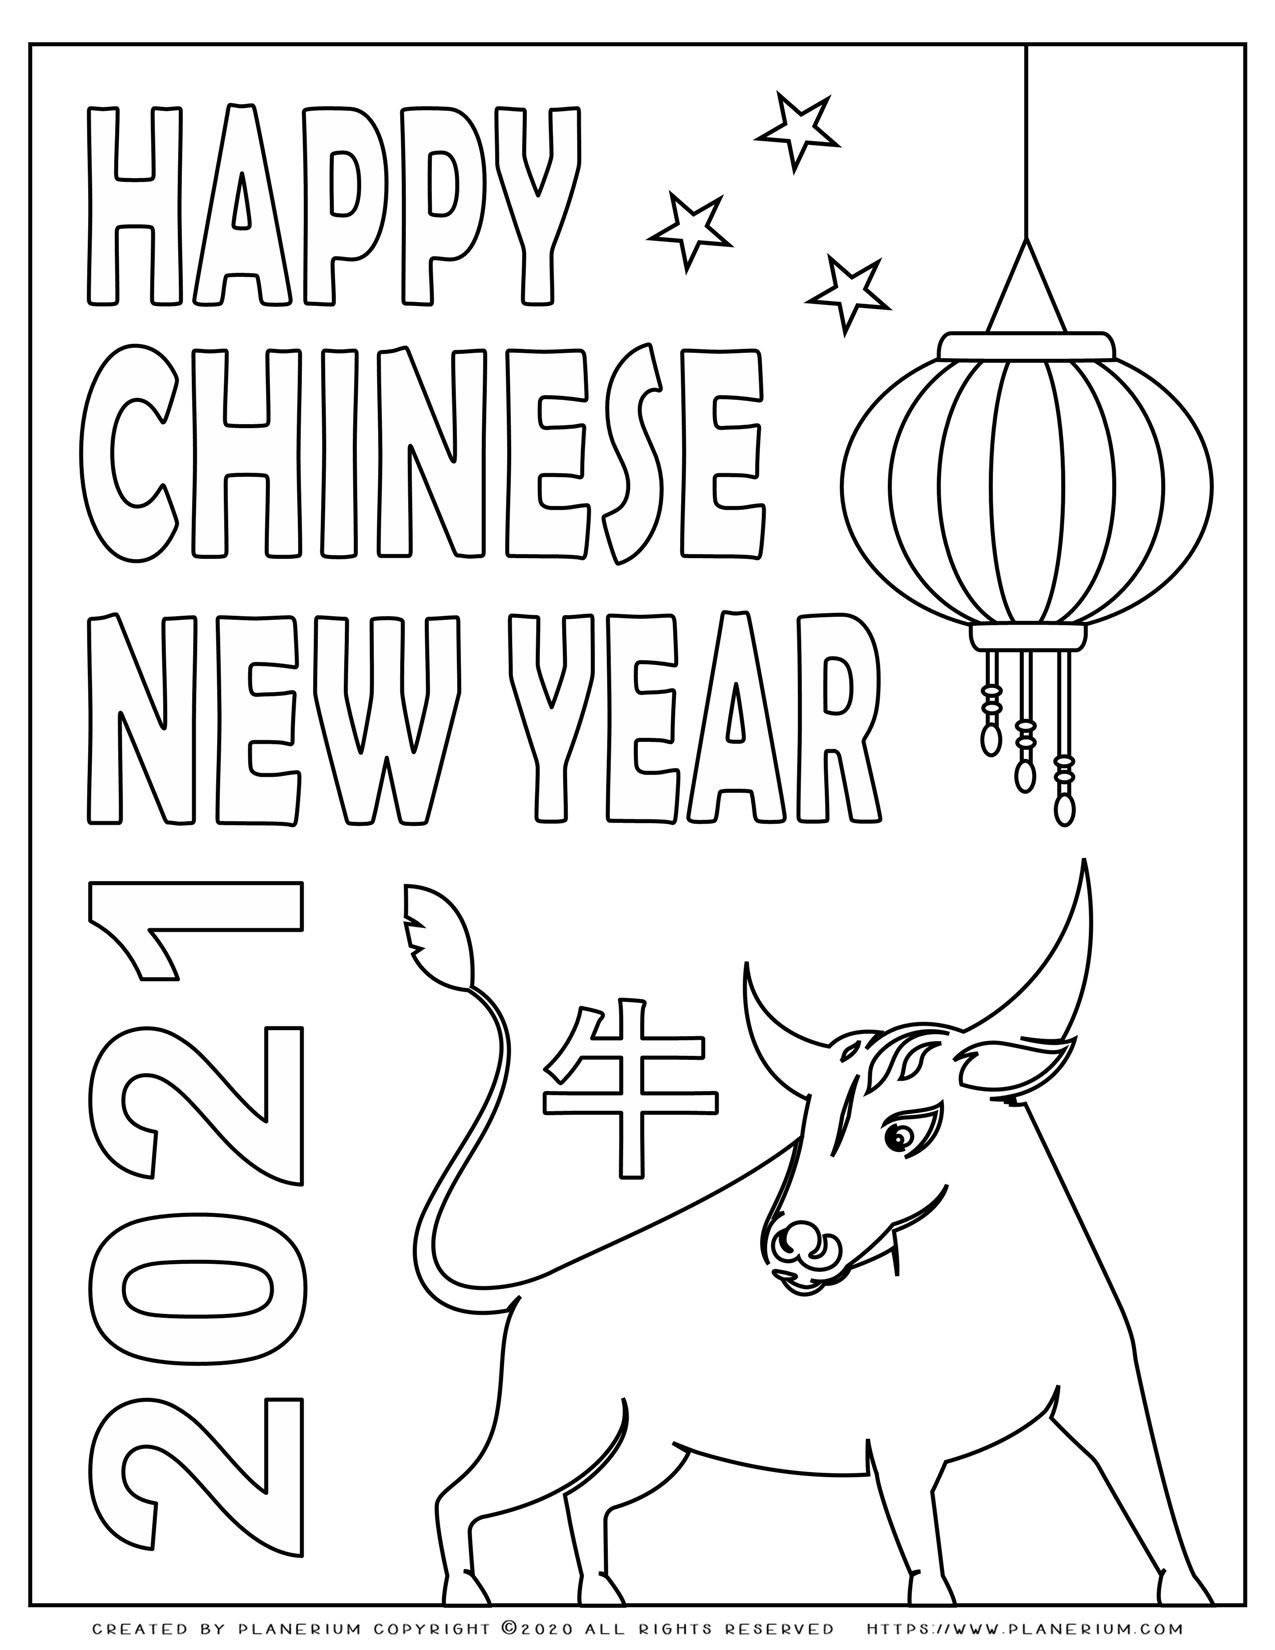 Happy Chinese New Year Ox 2021 Free Coloring Page Planerium In 2021 New Year Coloring Pages Happy Chinese New Year Chinese New Year Crafts For Kids